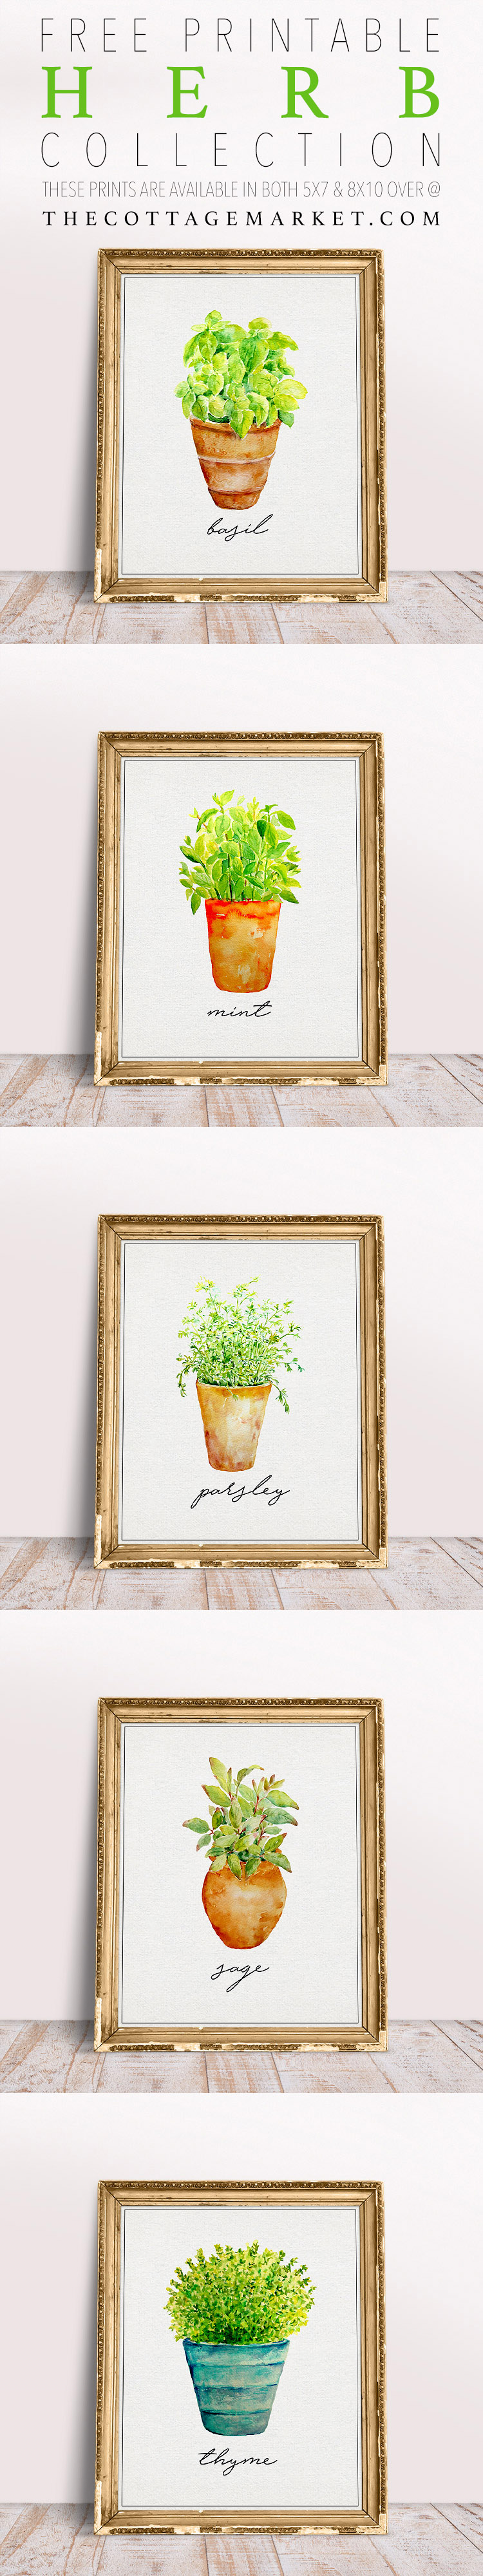 These free herb printables are simple and adorable design additions.